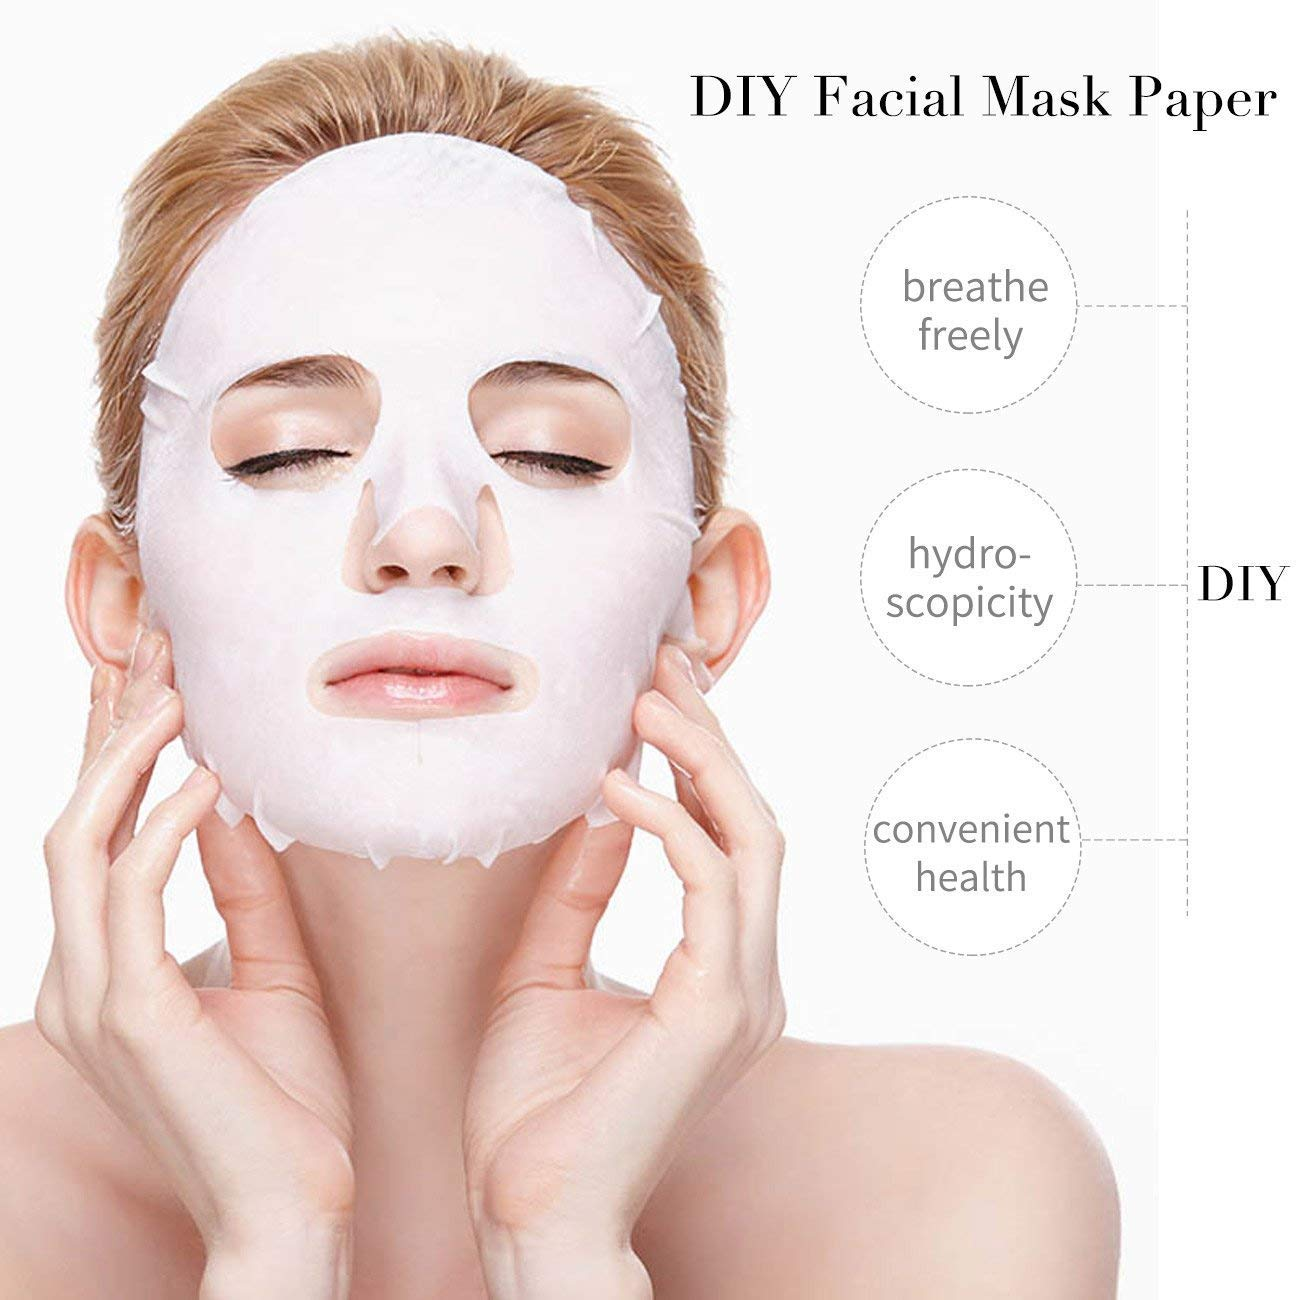 Yousha100Pcs Compressed Facial Mask, Grain Dry Sheet Paper Mask, DIY Natural Face mask sheet Cotton Mask Sheet, With Free Mask Bowl for skin care(100pcs)